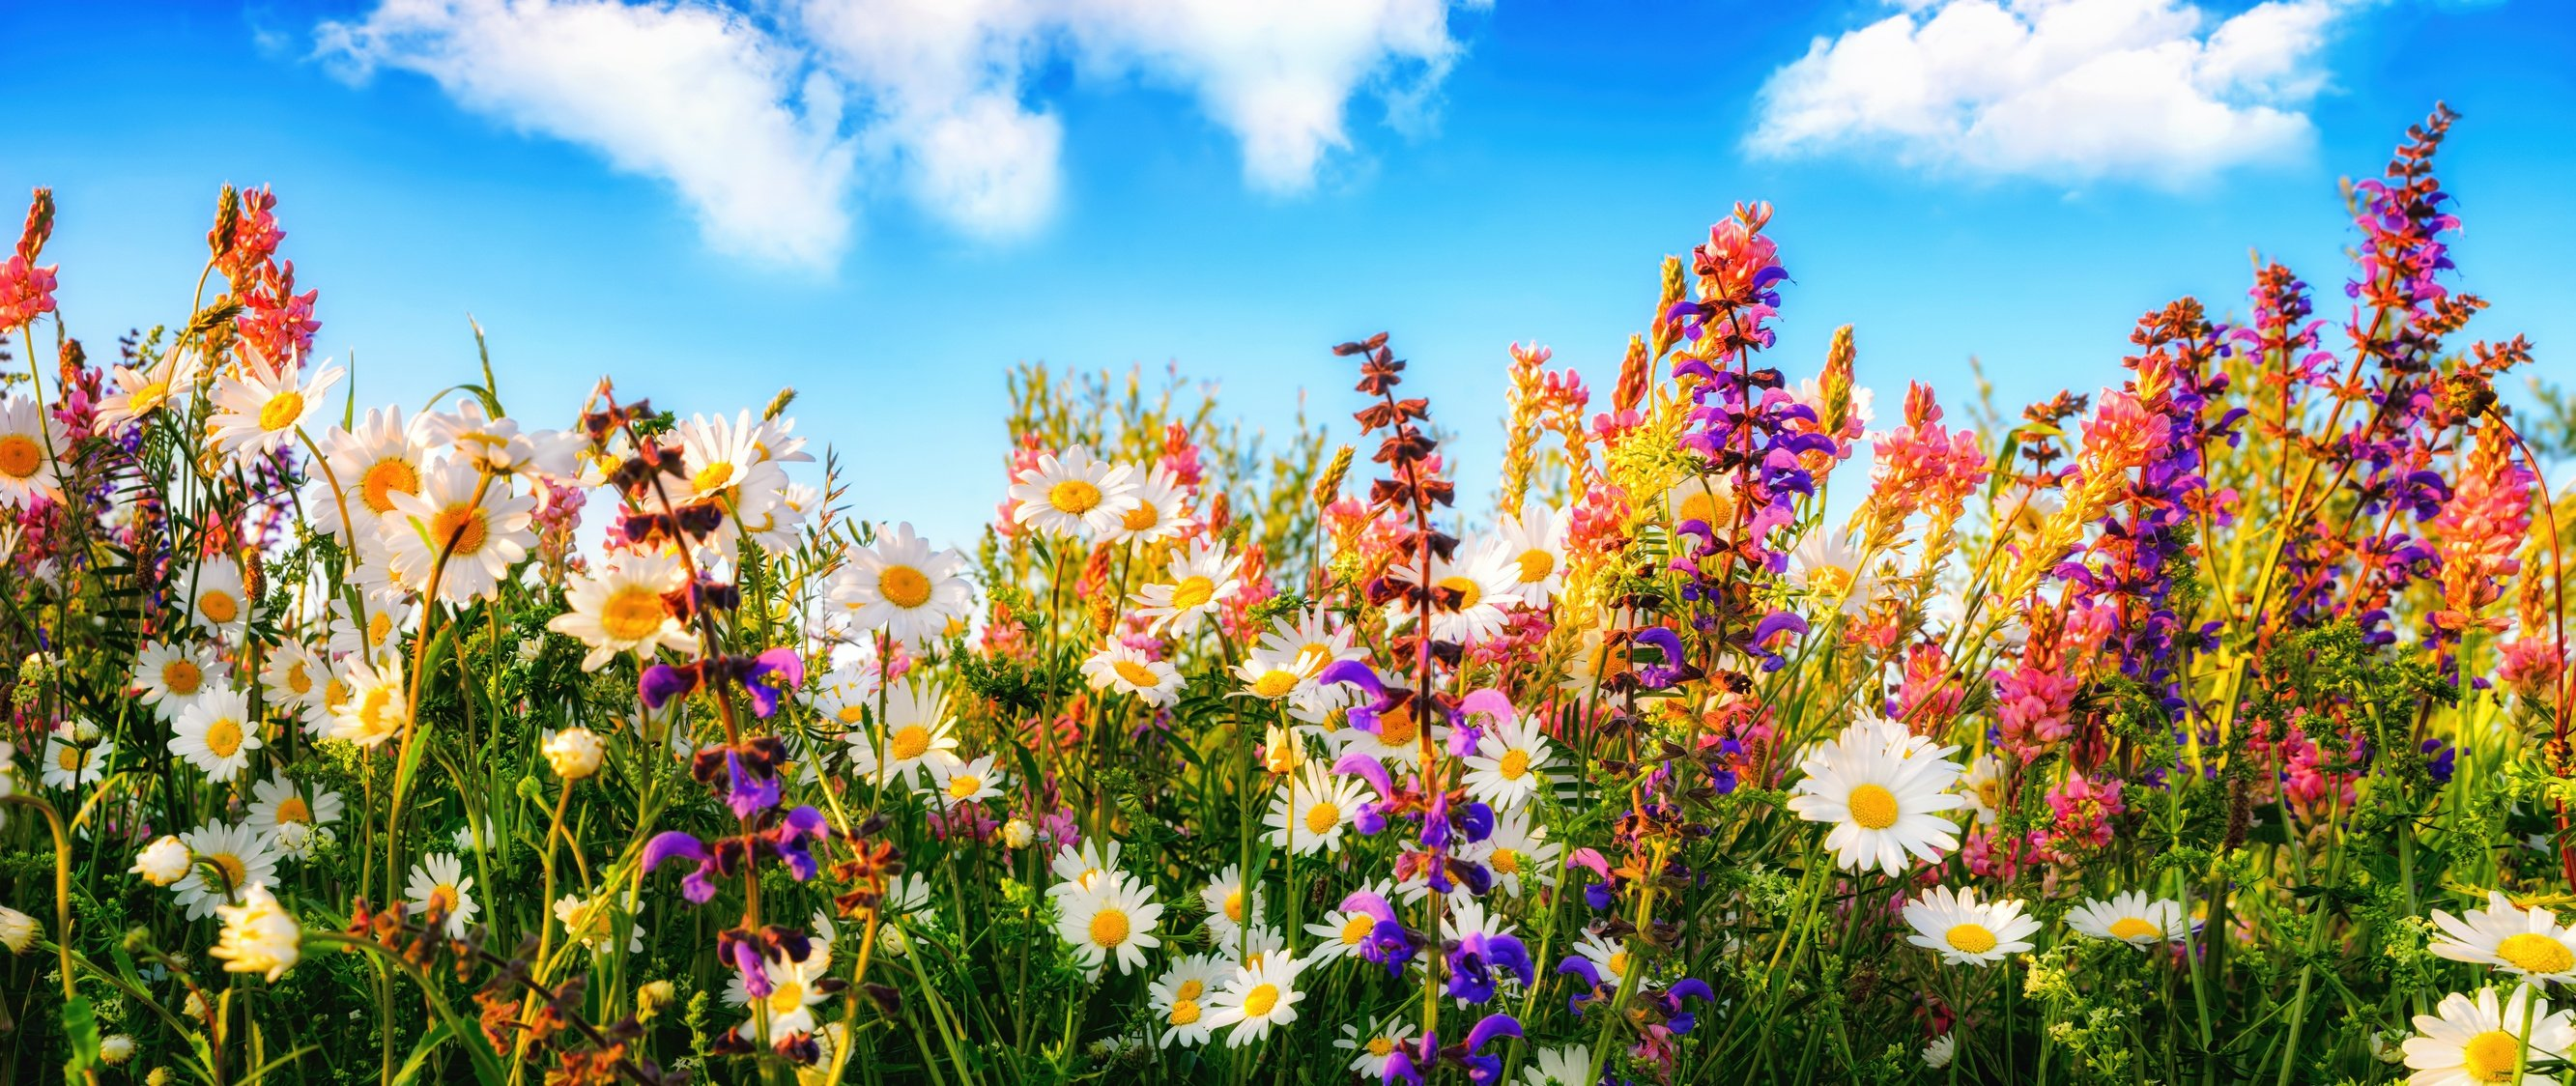 Spring Planting The Best Annuals And Perennials For Ohio